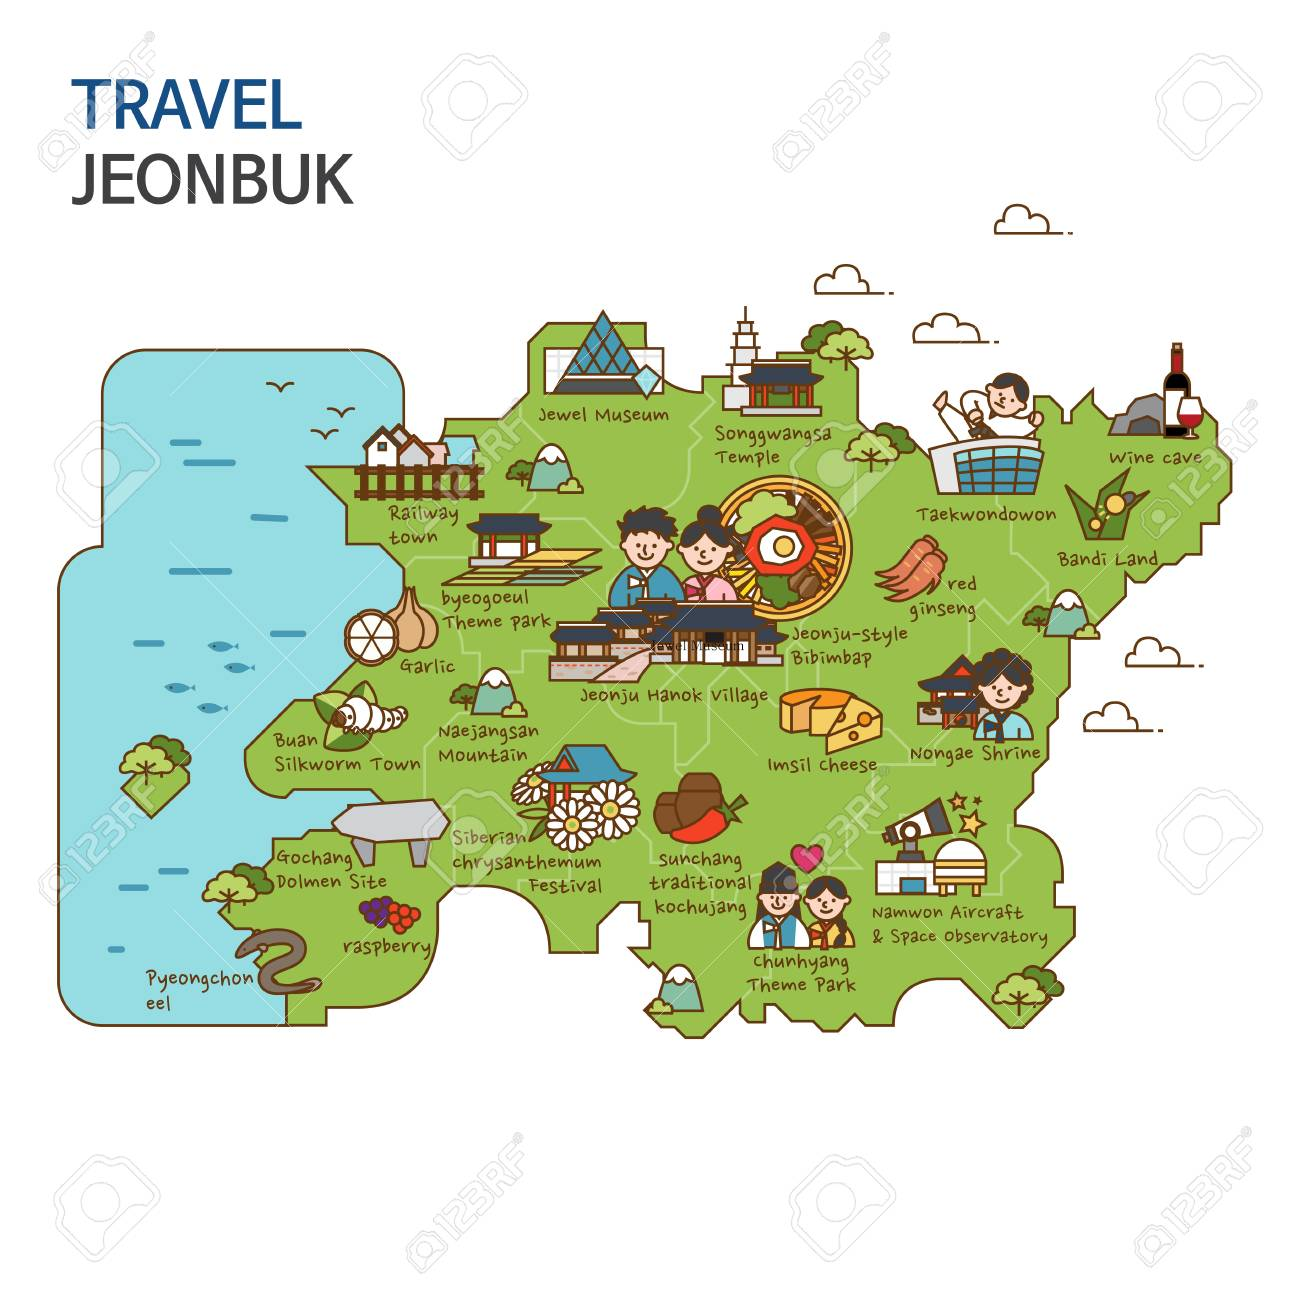 City Tourtravel Map Illustration Jeonbuk Province South Korea